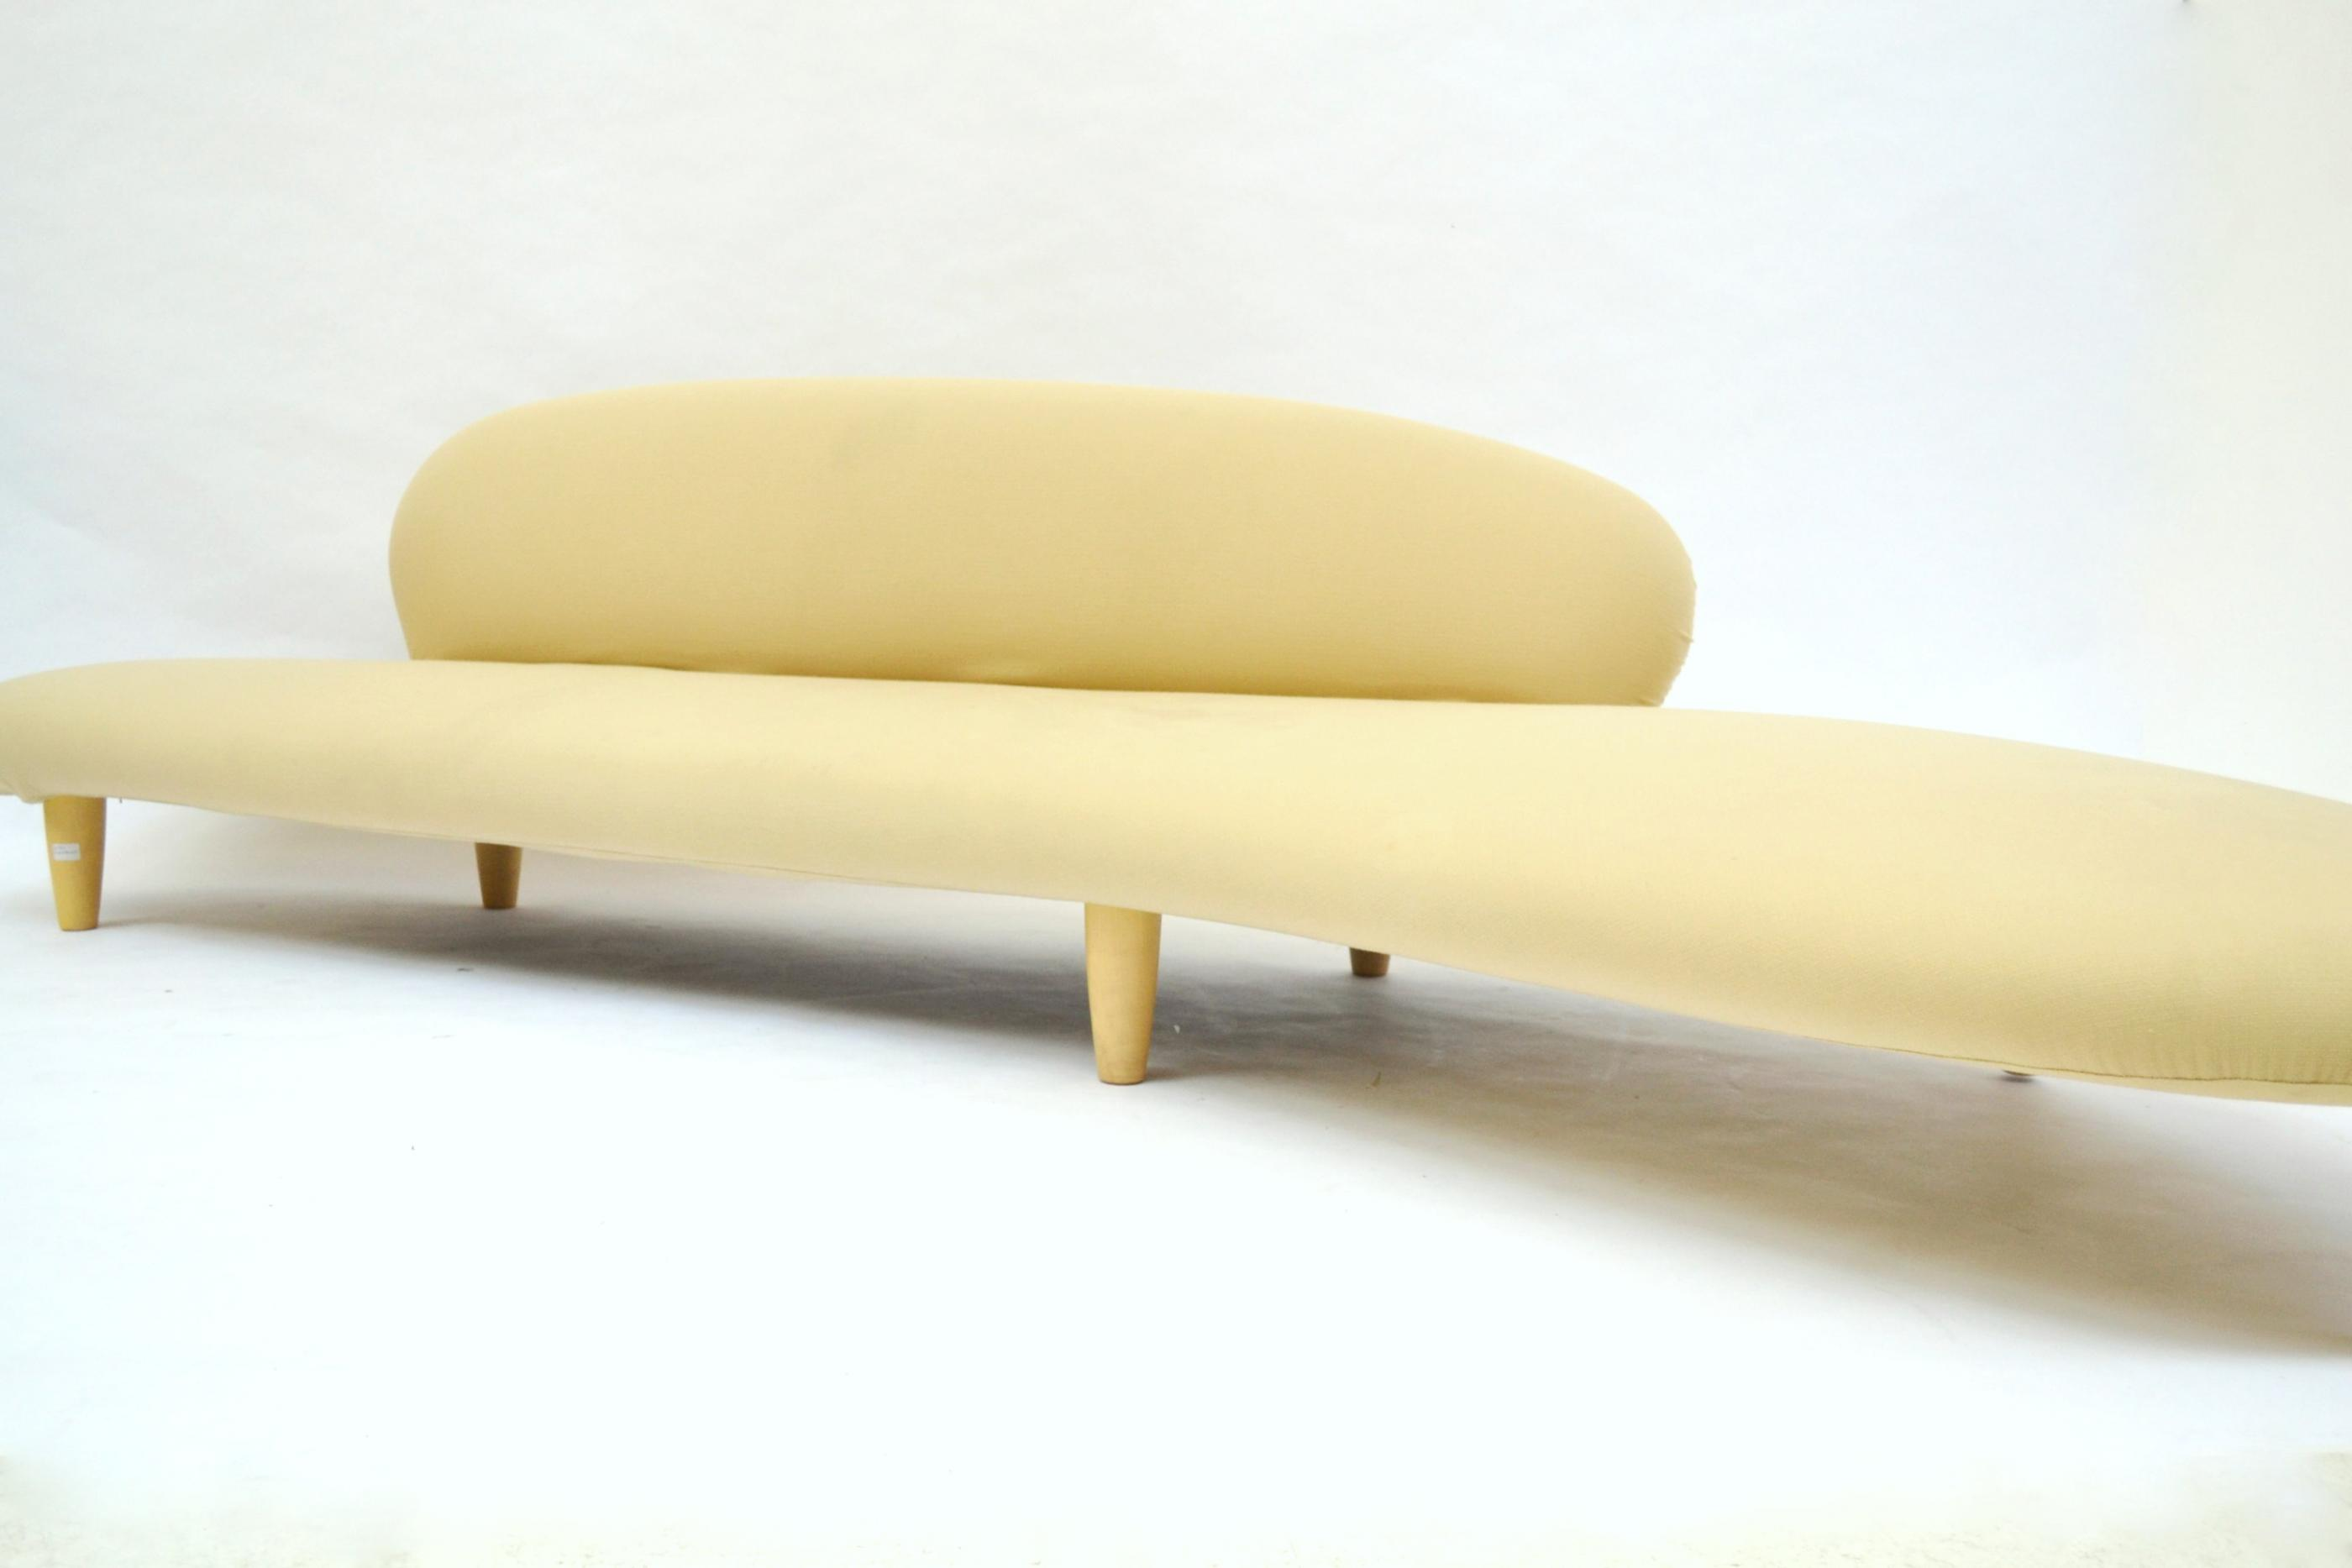 noguchi freeform sofa vitra inexpensive leather sofas isamu modernism